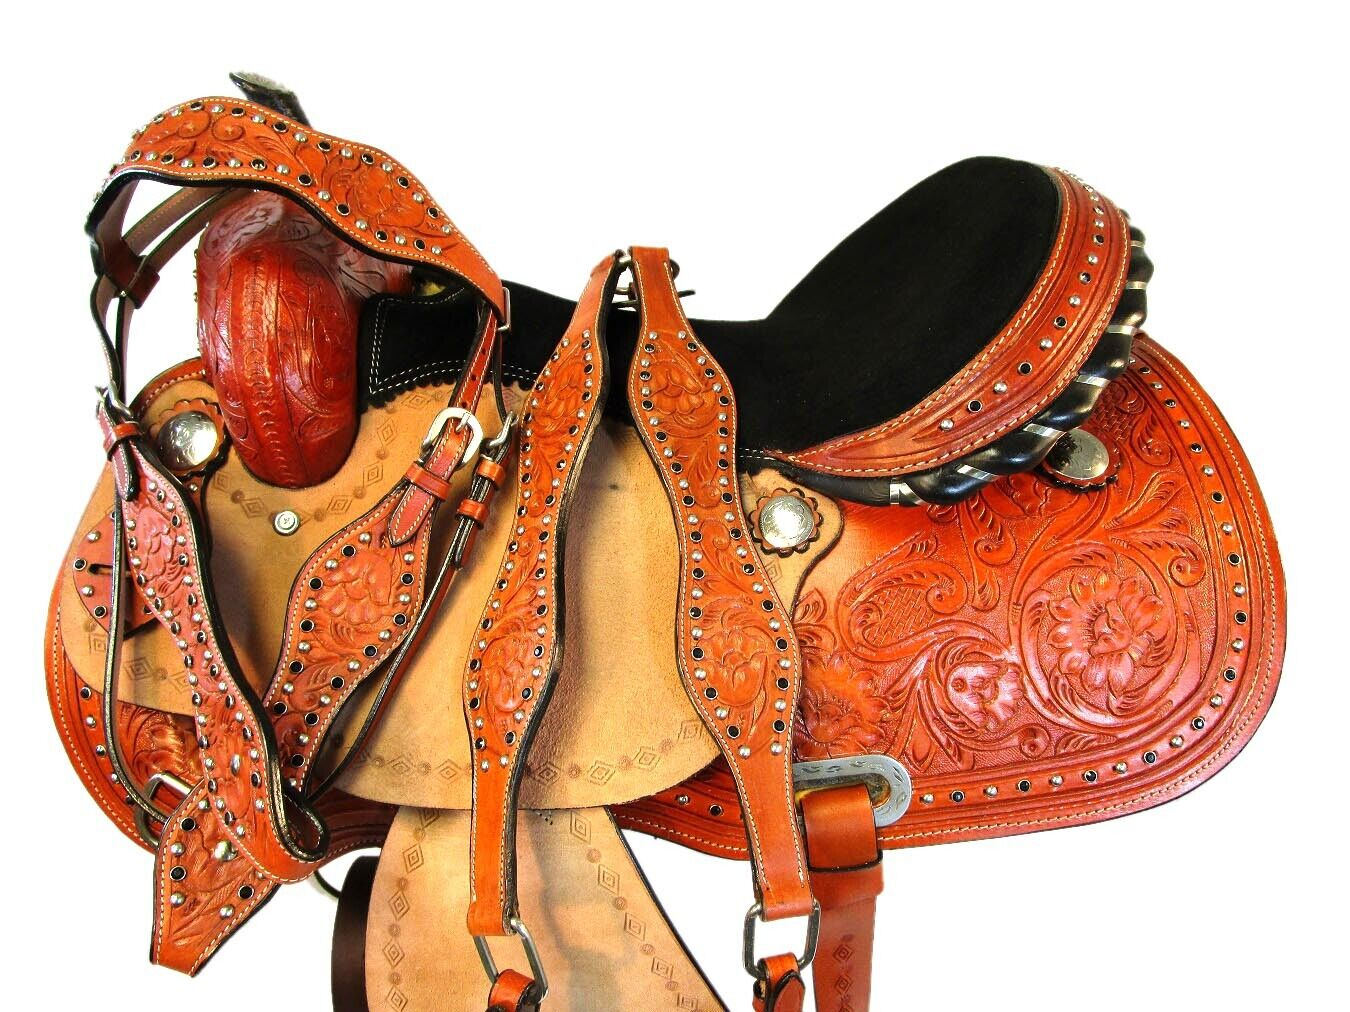 TRAIL SADDLE WESTERN HORSE PLEASURE FLORAL TOOLED LEATHER SHOW TACK SET 15 16 17